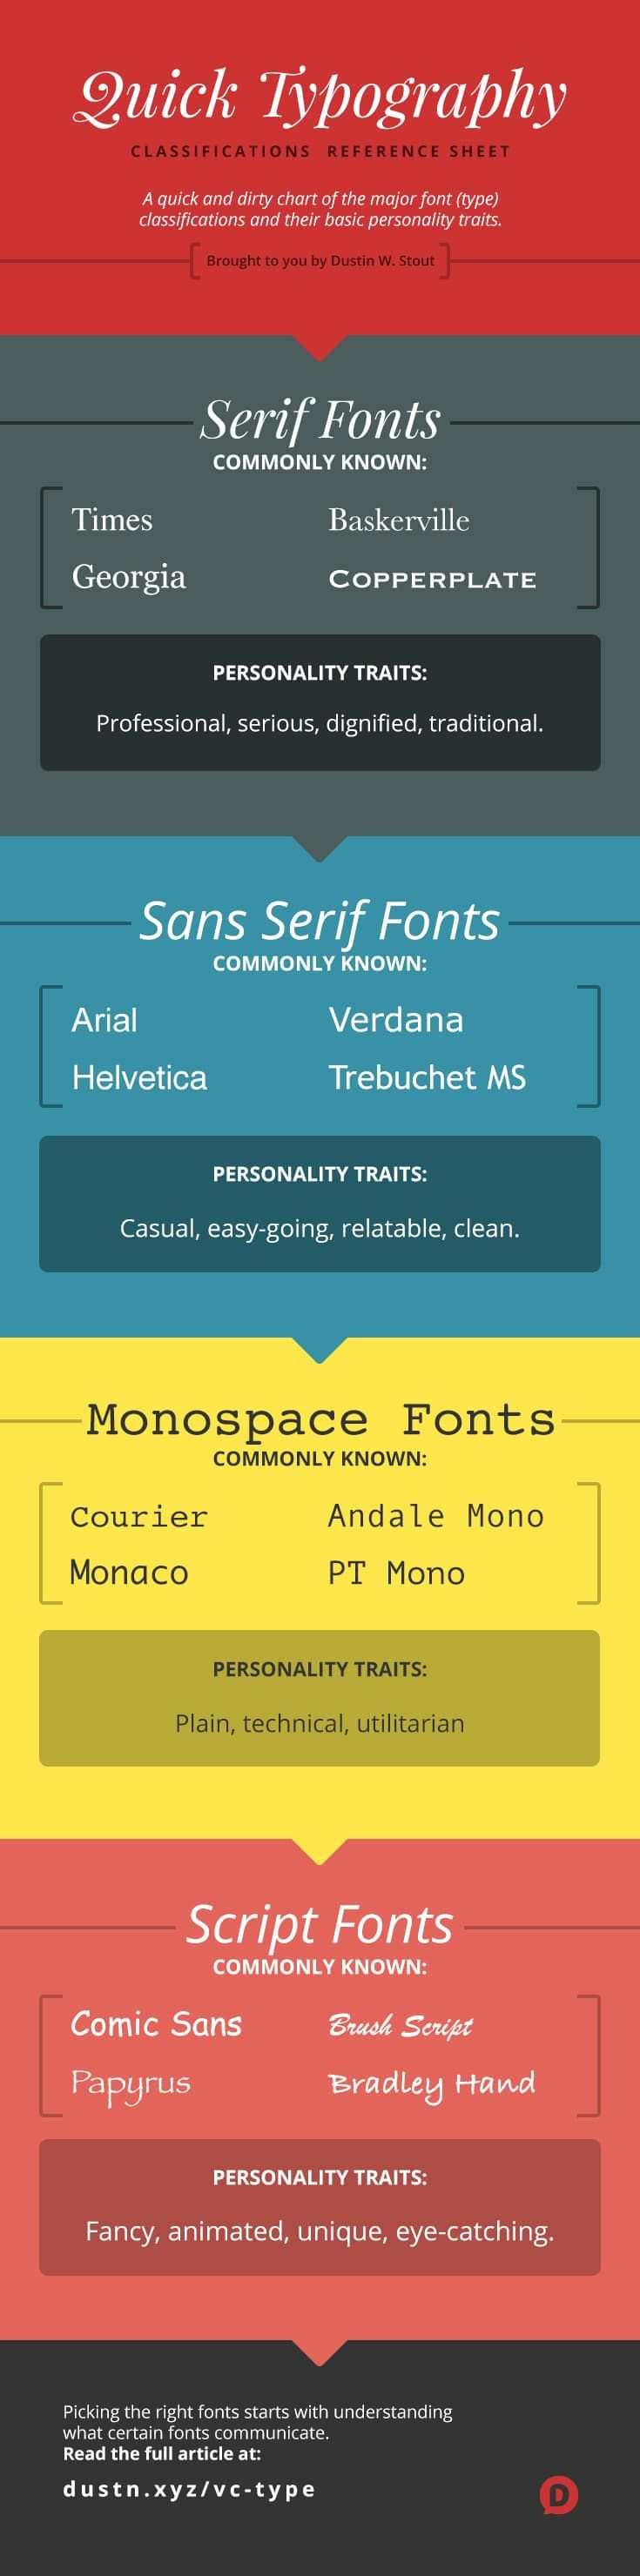 How to: Typography for Visual Content That Doesn't Suck